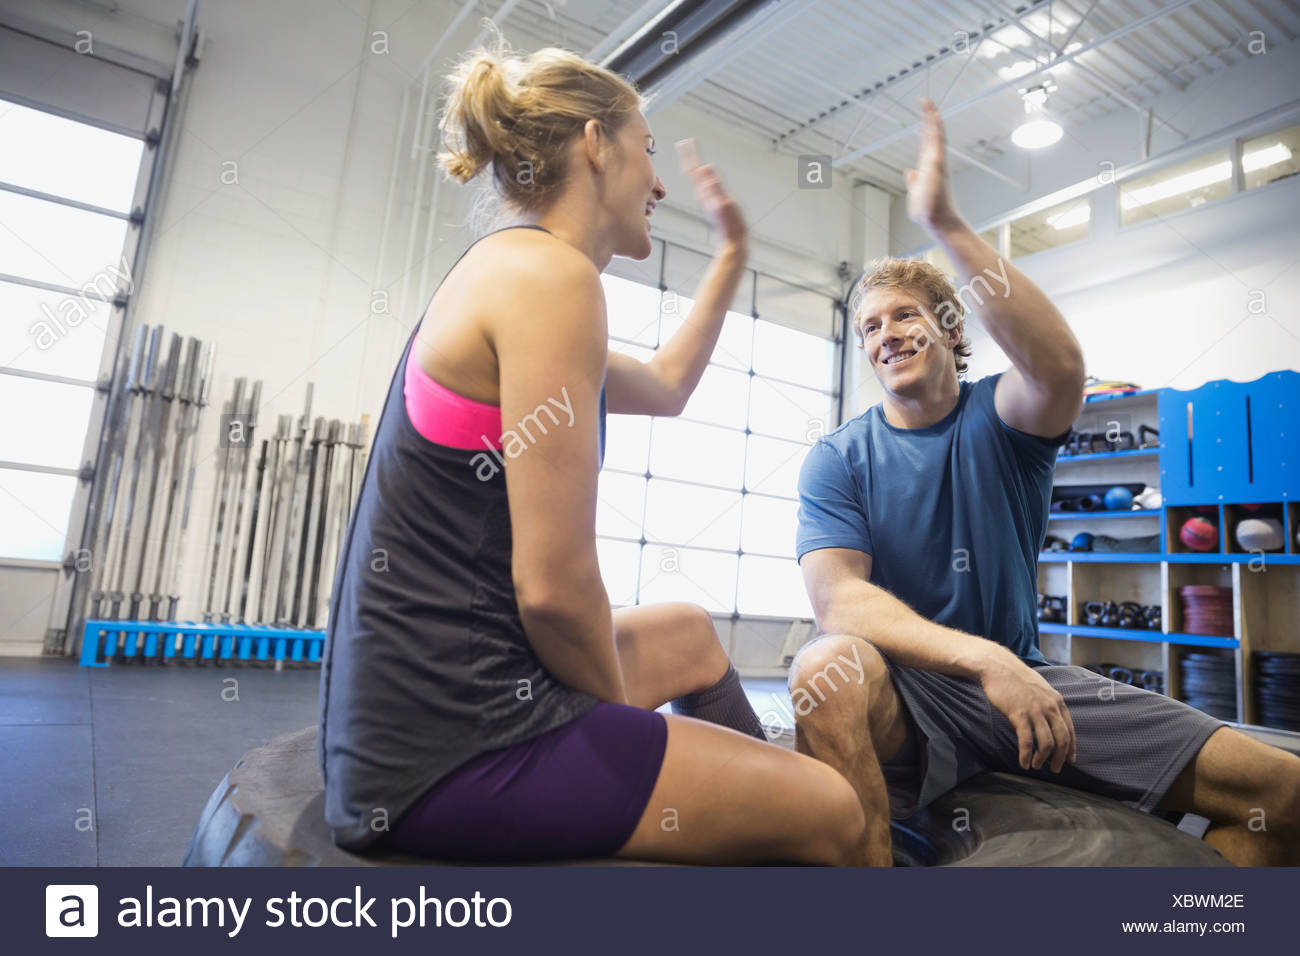 Athletes giving high five at gym - Stock Image